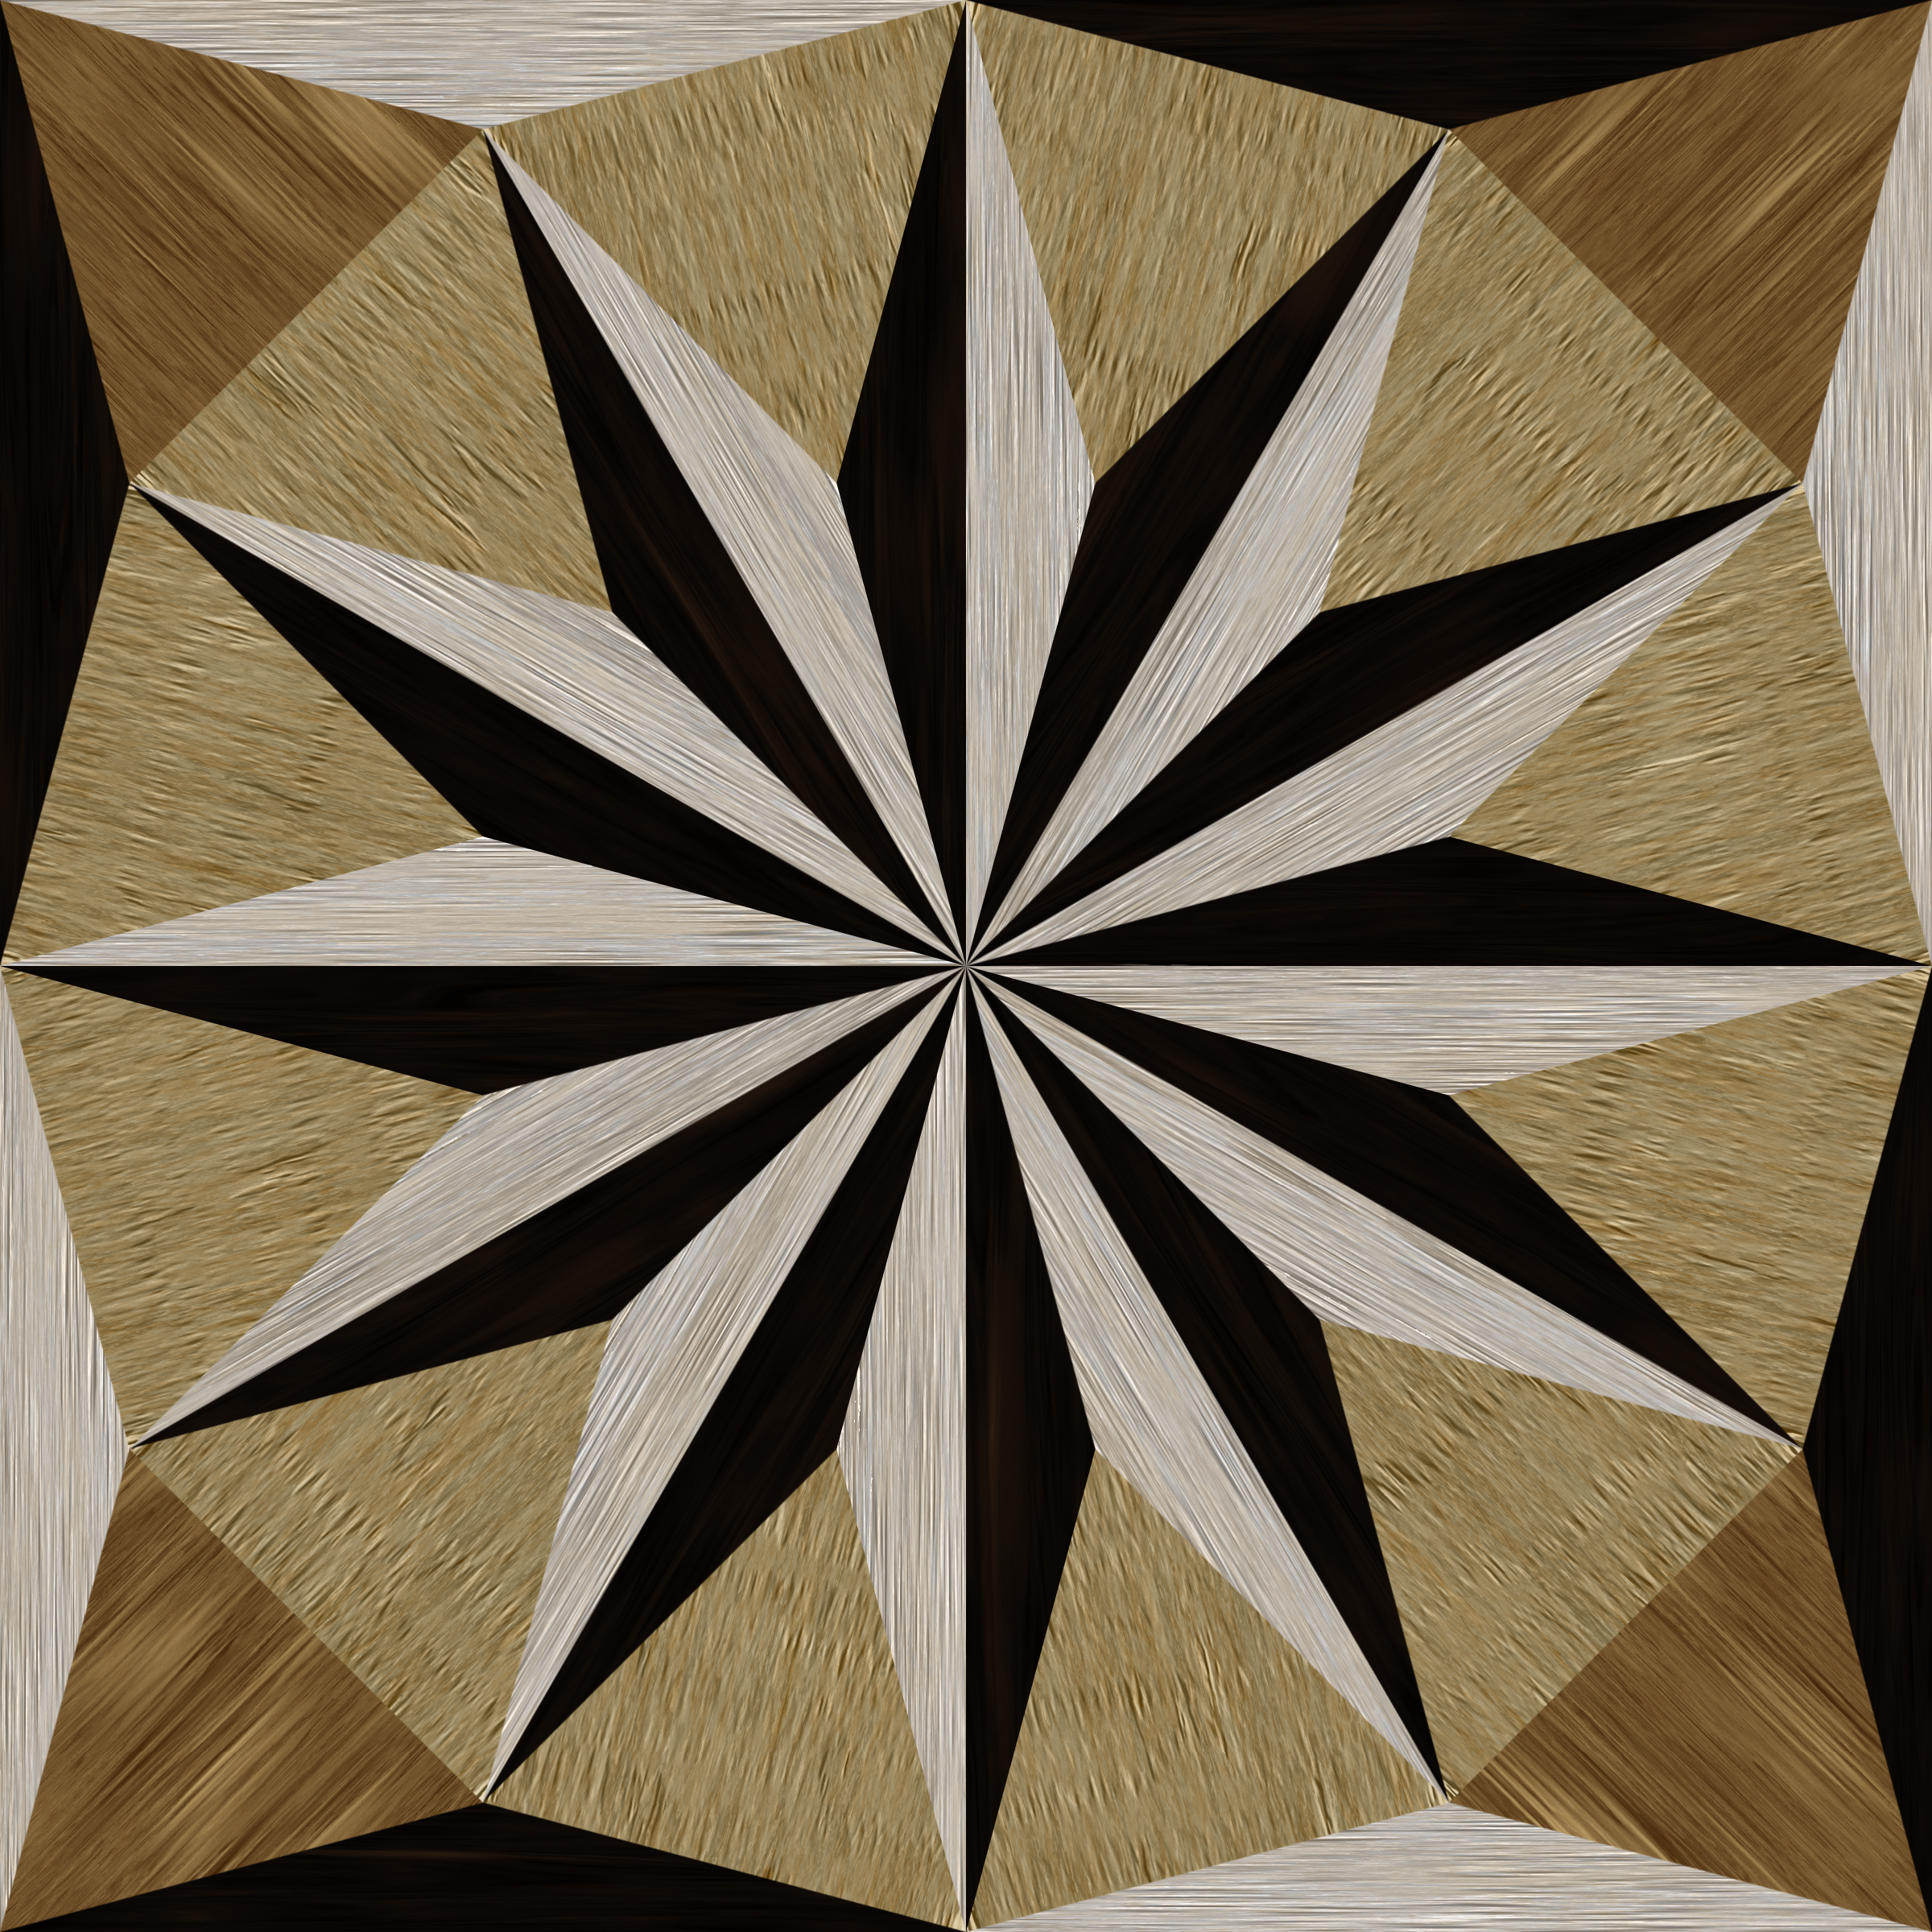 wooden triangle tiling 4 by Lazur URH